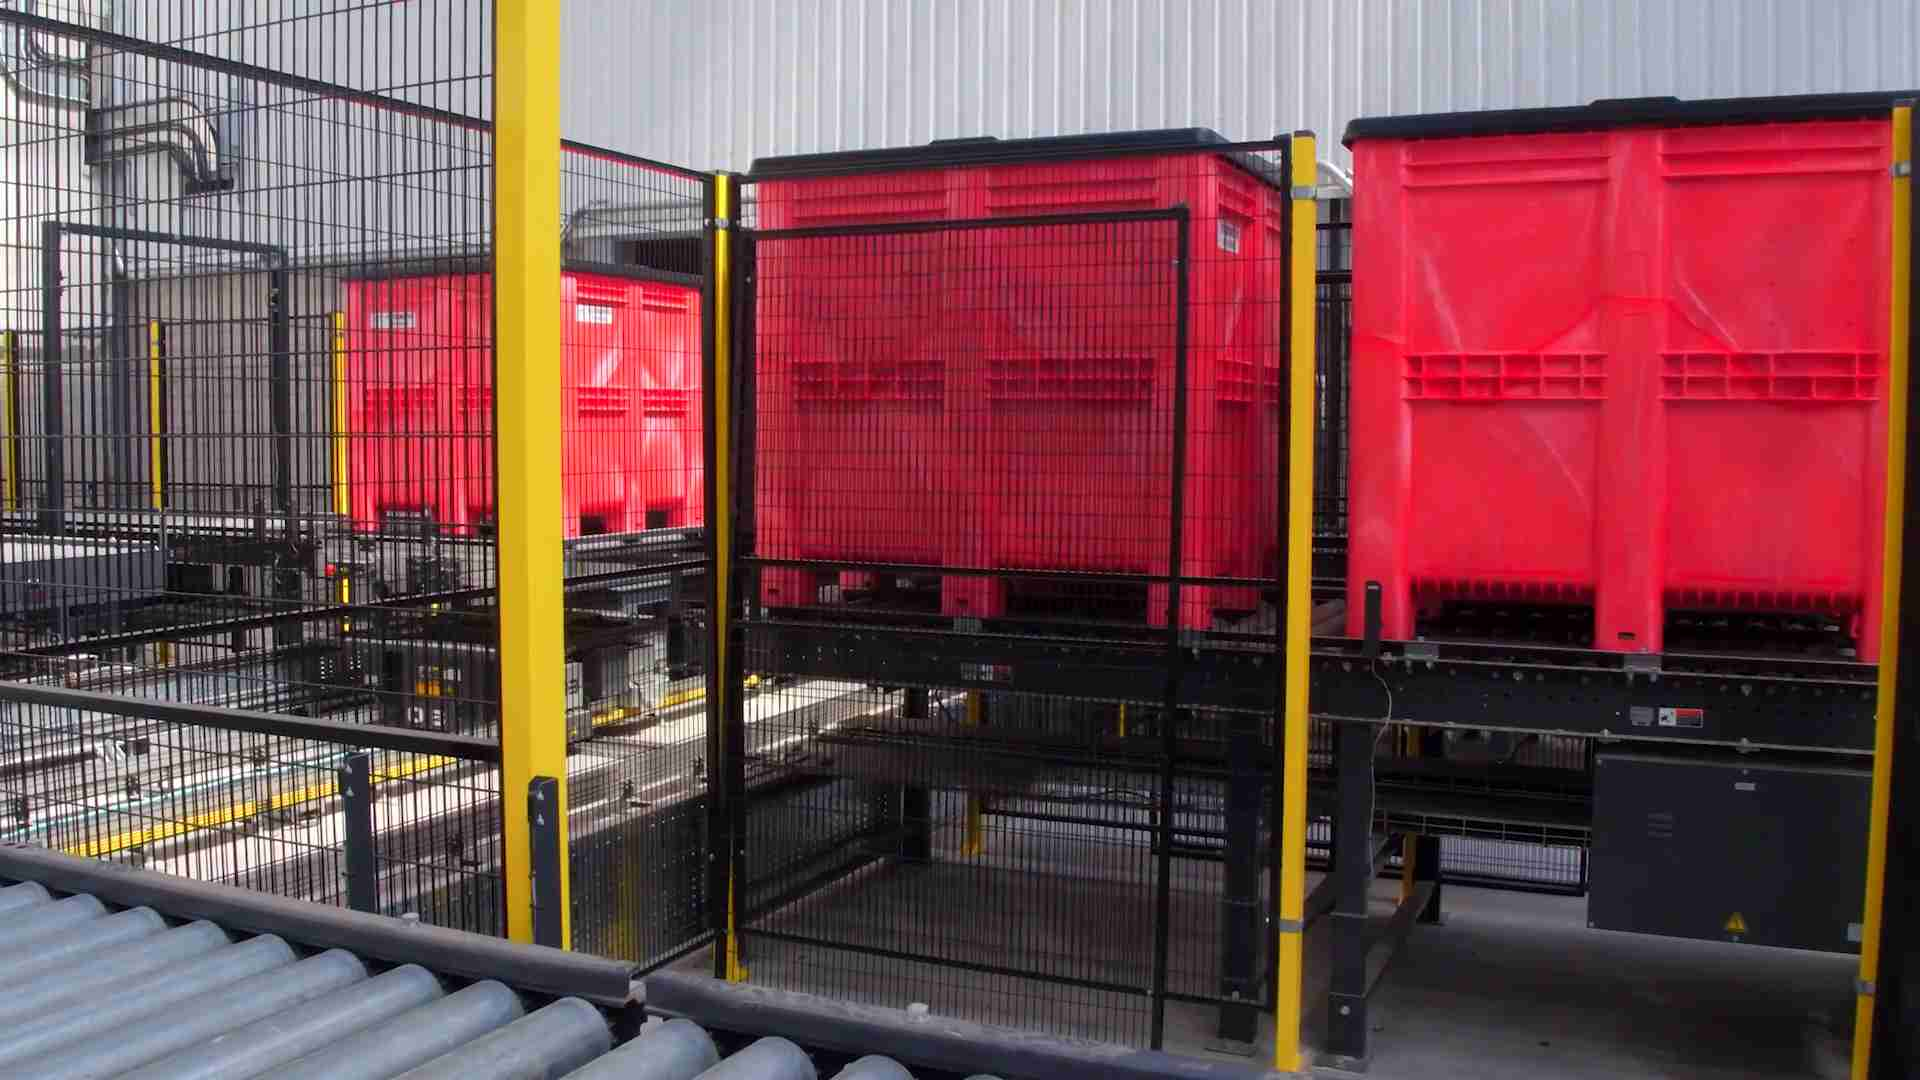 Goplasticpallets.com's plastic pallet boxes in use at GA's new automated facility.2